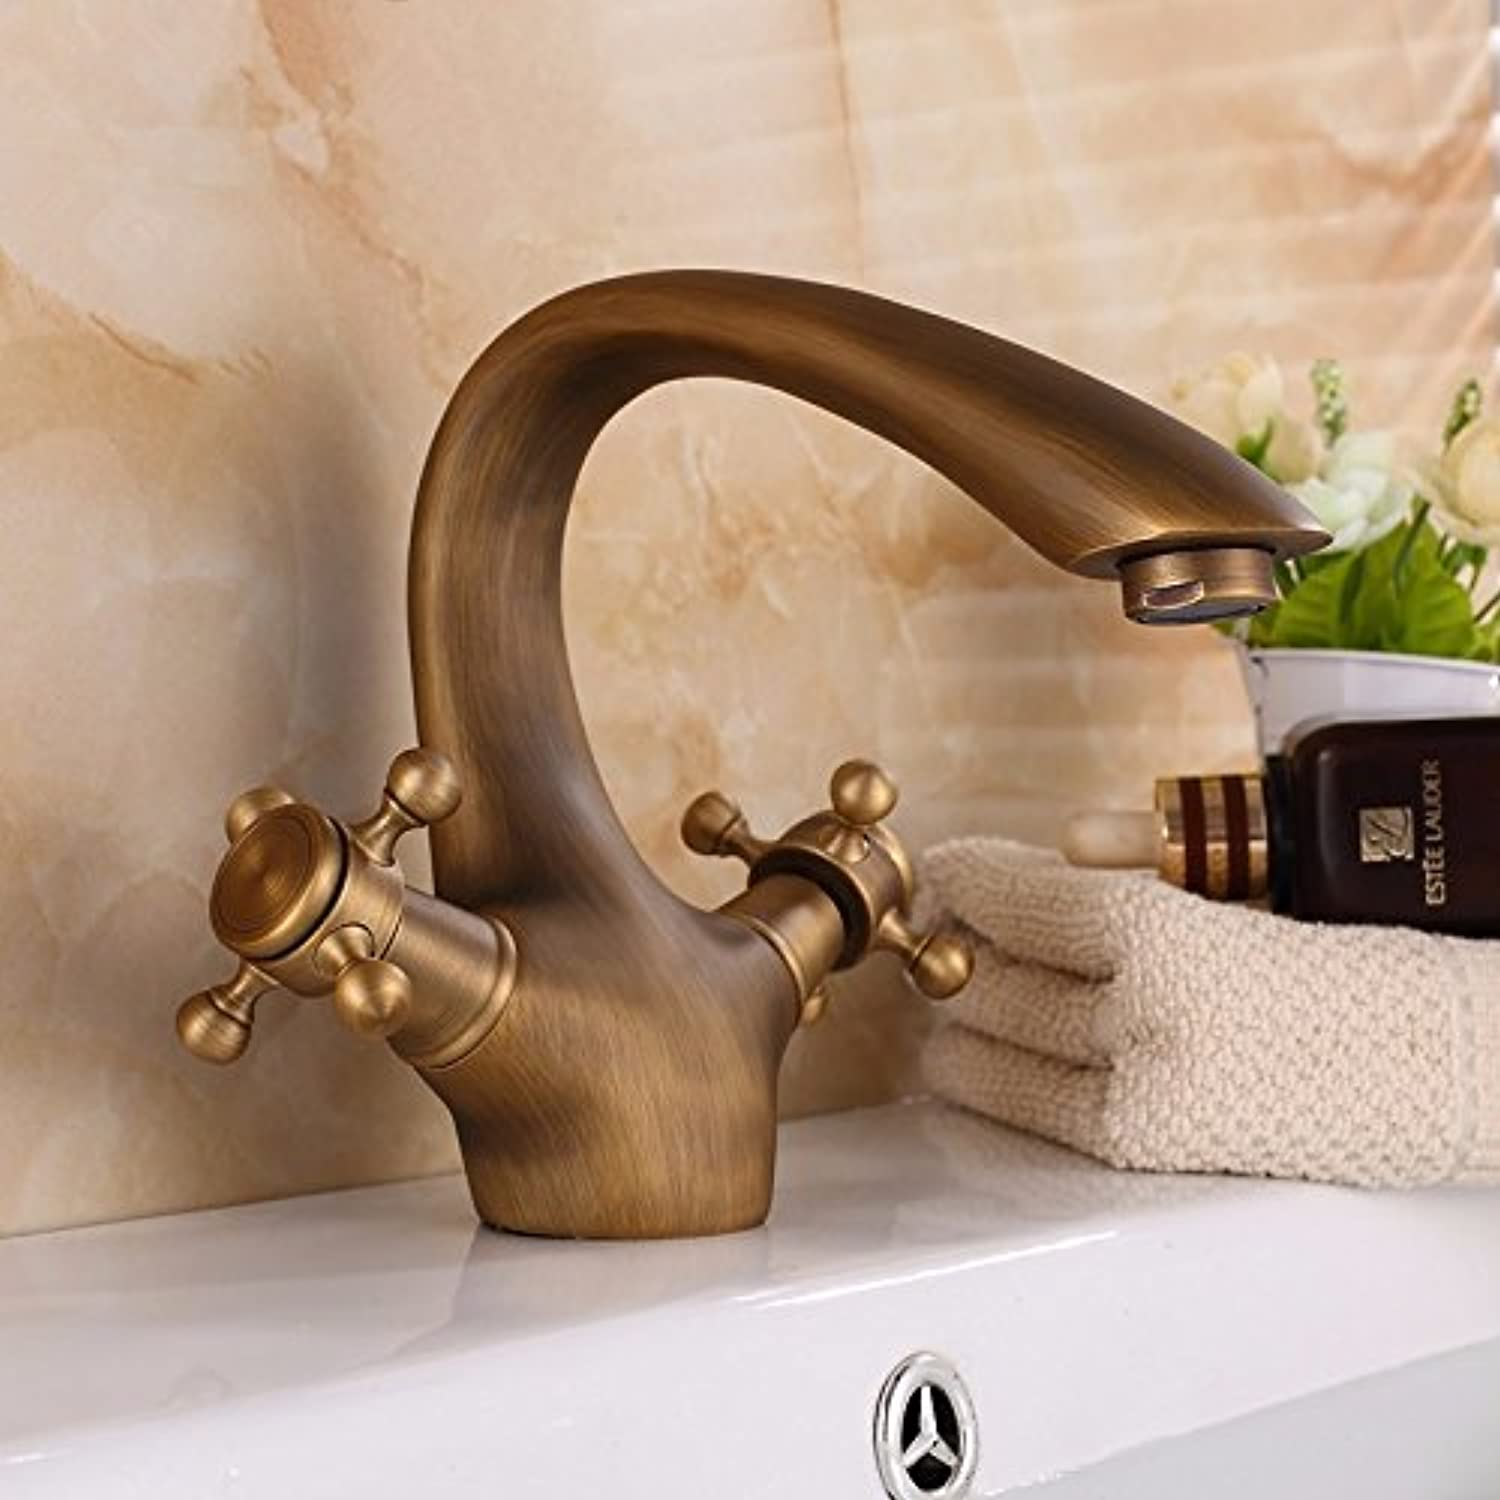 Hlluya Professional Sink Mixer Tap Kitchen Faucet The Antique brass faucet cold-hot water tap